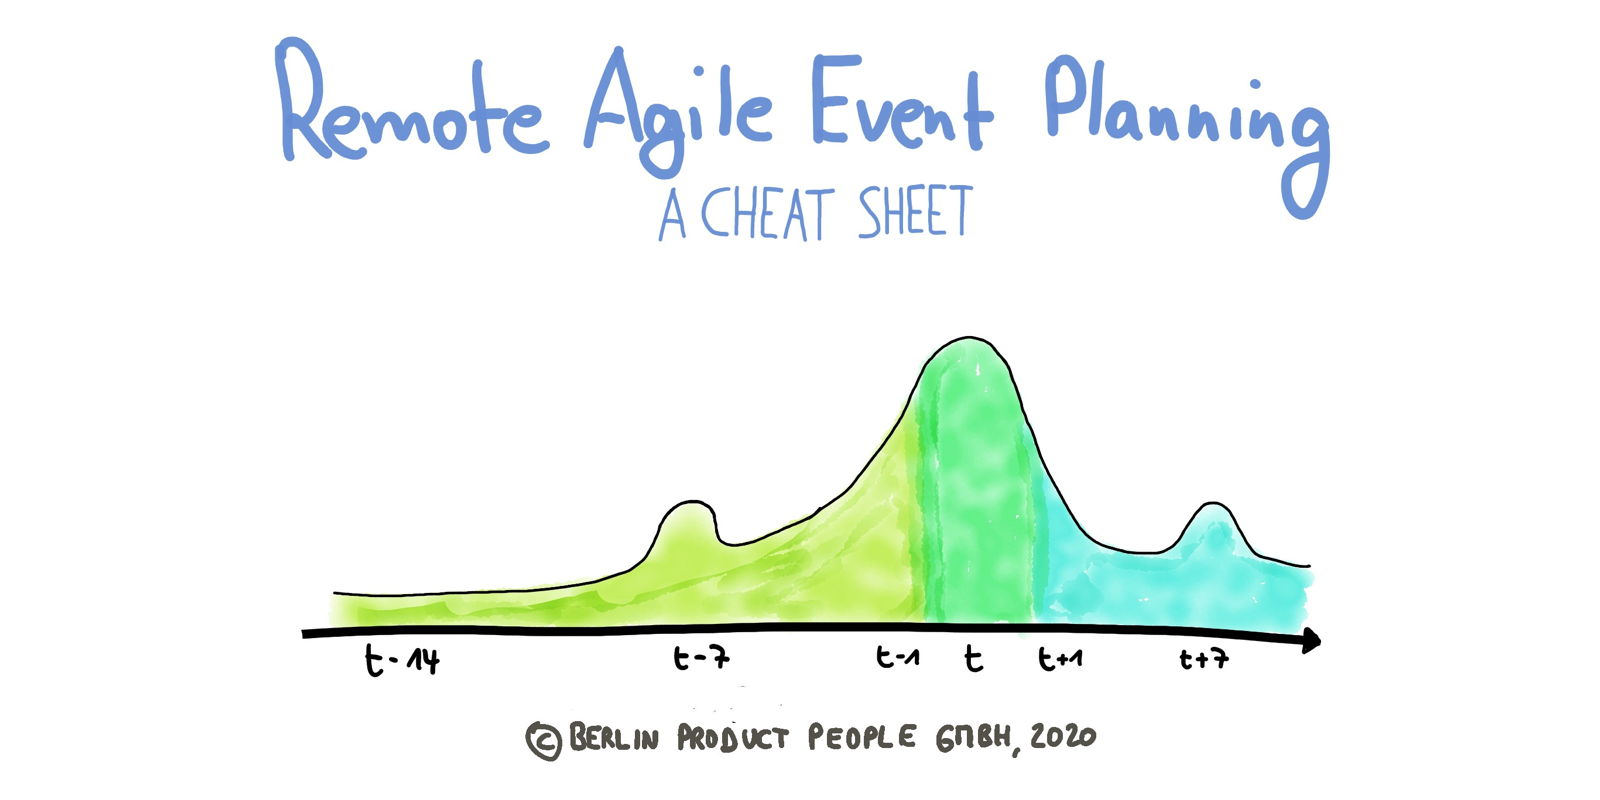 Remote Agile (9): A Cheat Sheet for Remote Agile Event Planning